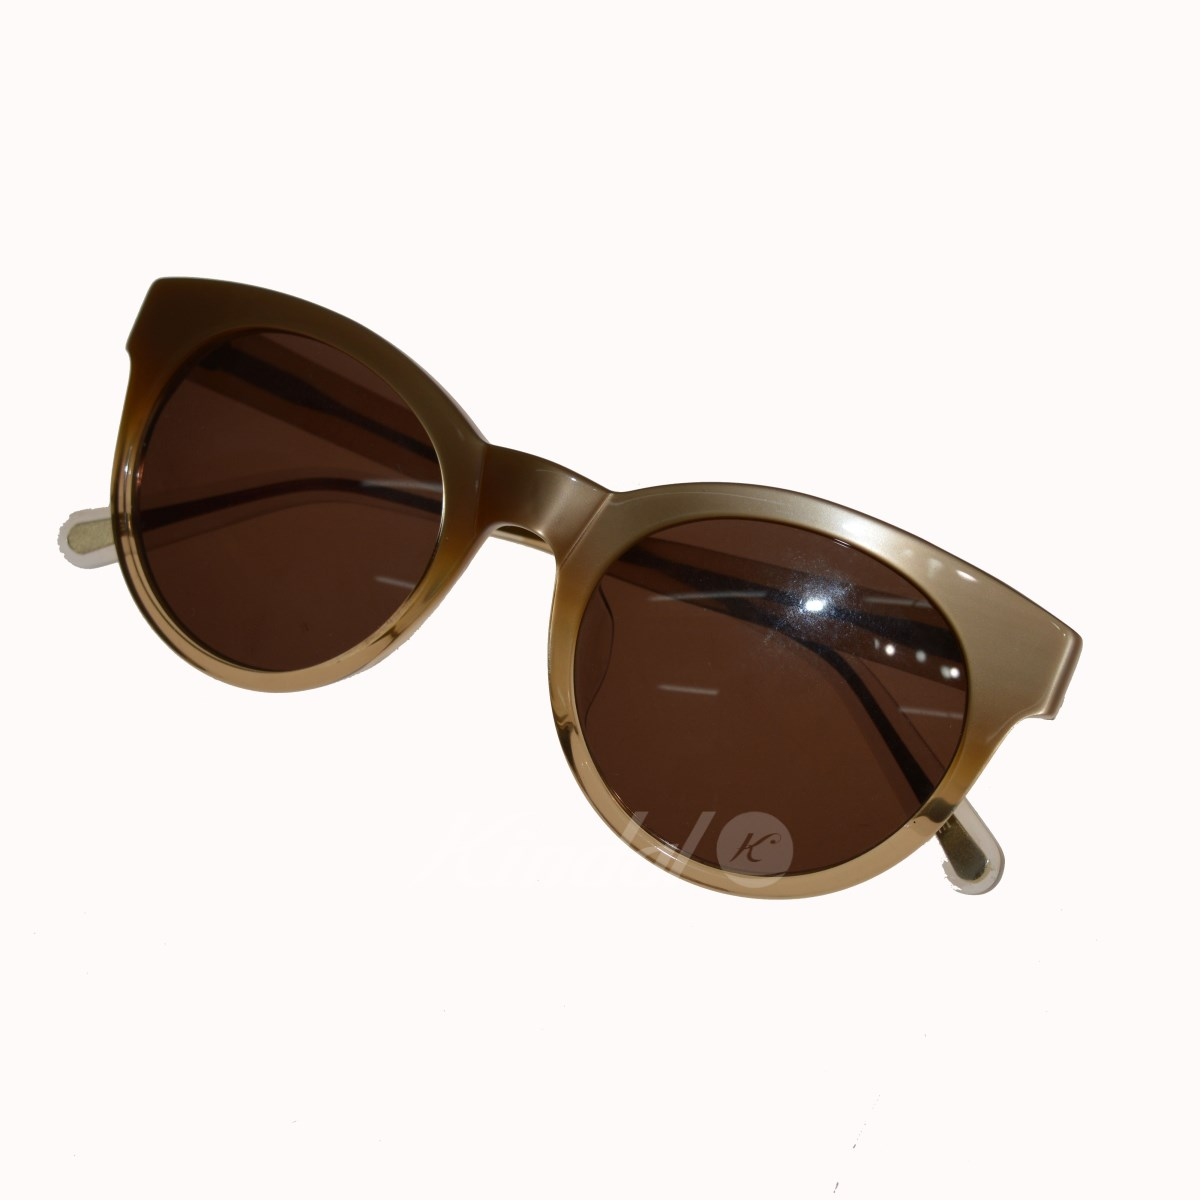 【中古】OLIVER PEOPLES Etiwanda サングラス 【送料無料】 【125871】 【KIND1641】